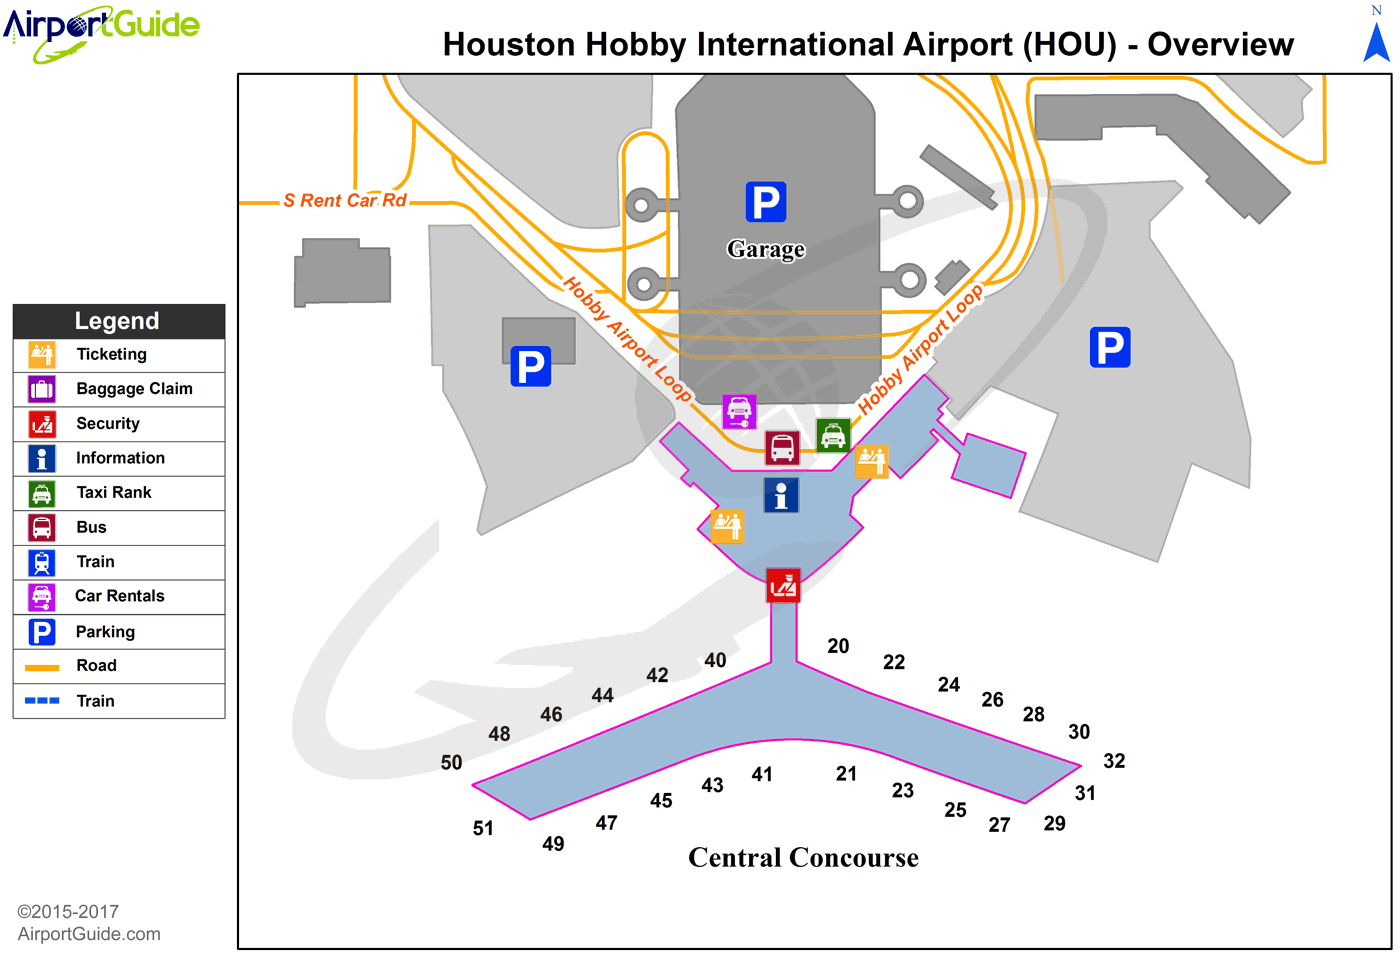 Houston William P Hobby HOU Airport Terminal Maps - Houston terminal map